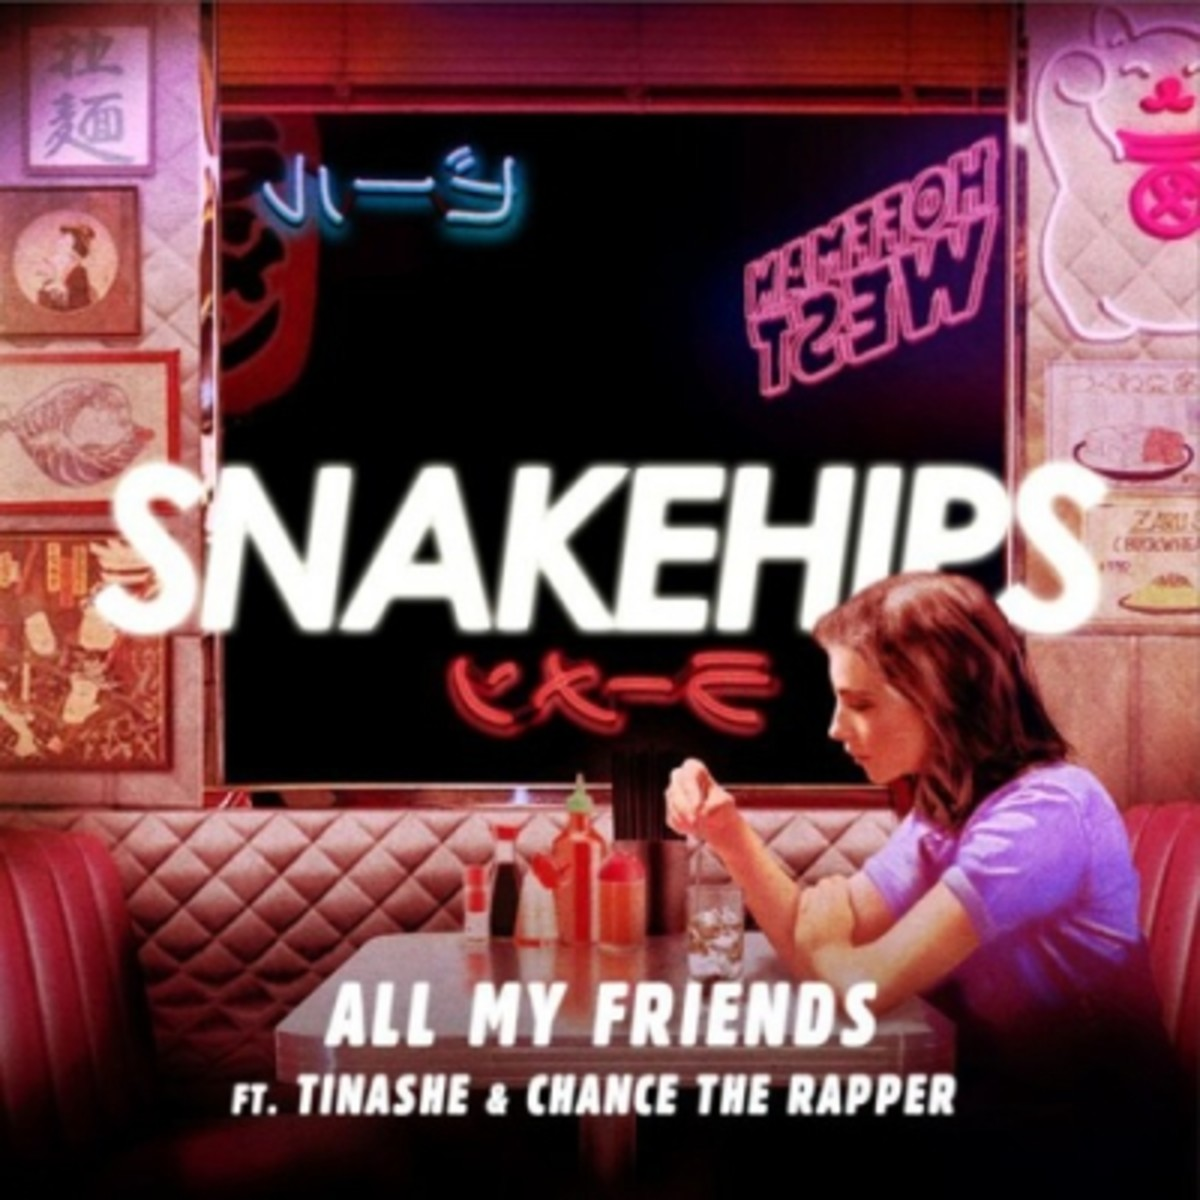 snakehips-all-my-friends.jpg